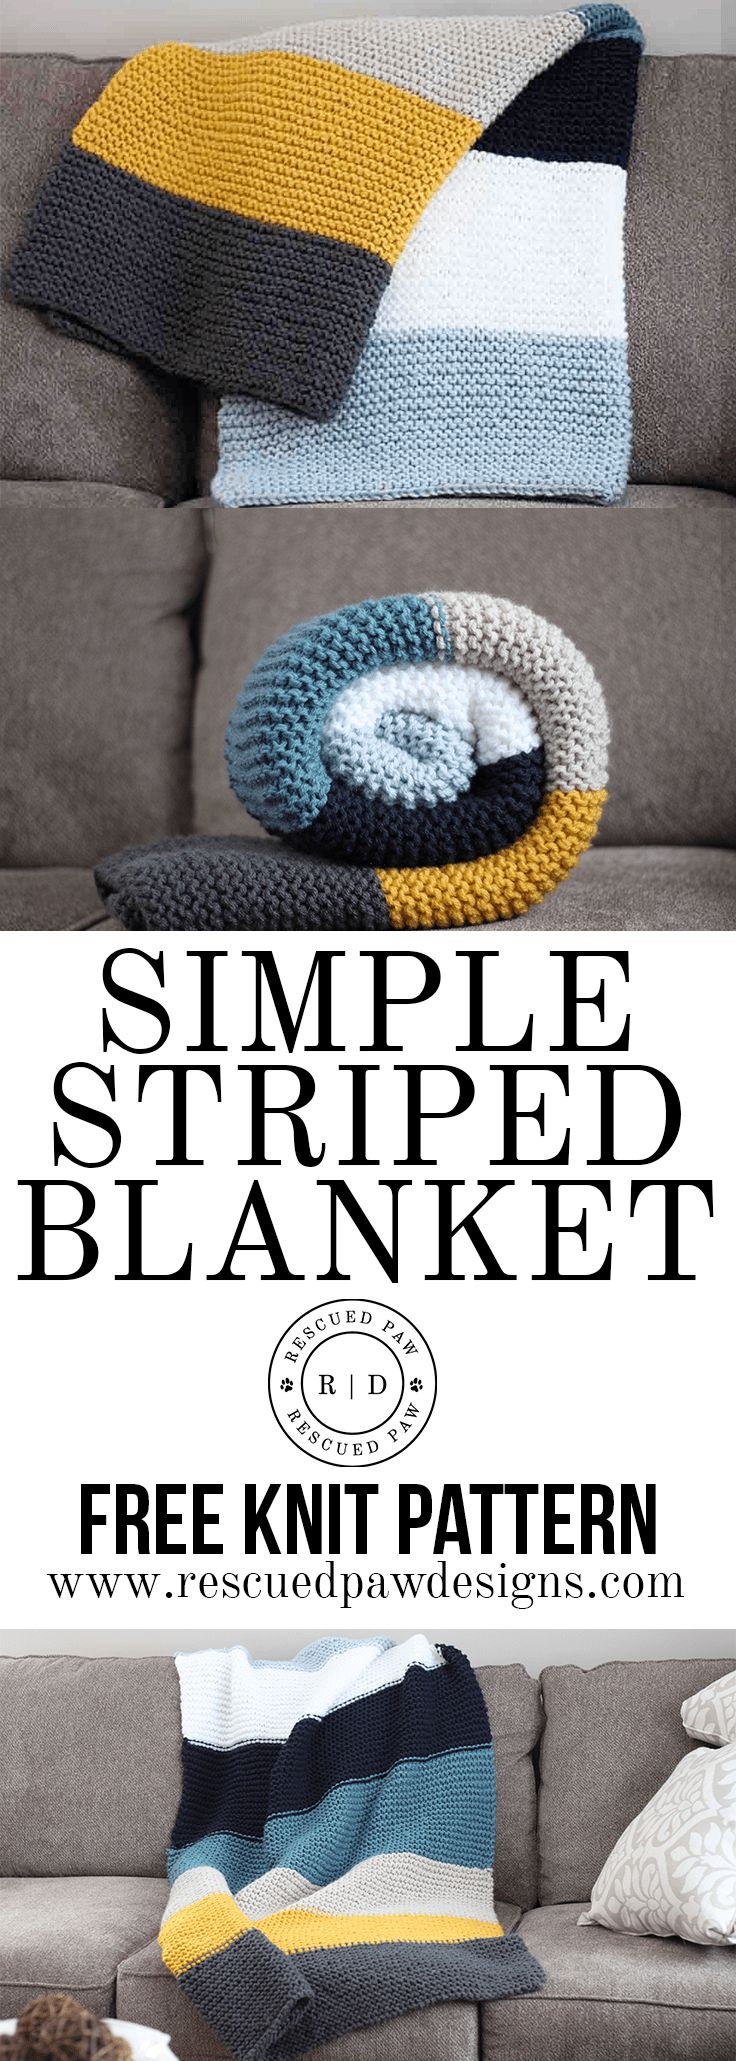 Simple Striped Blanket - Free Knit Pattern by Rescued Paw Designs - Beginner Friendly!